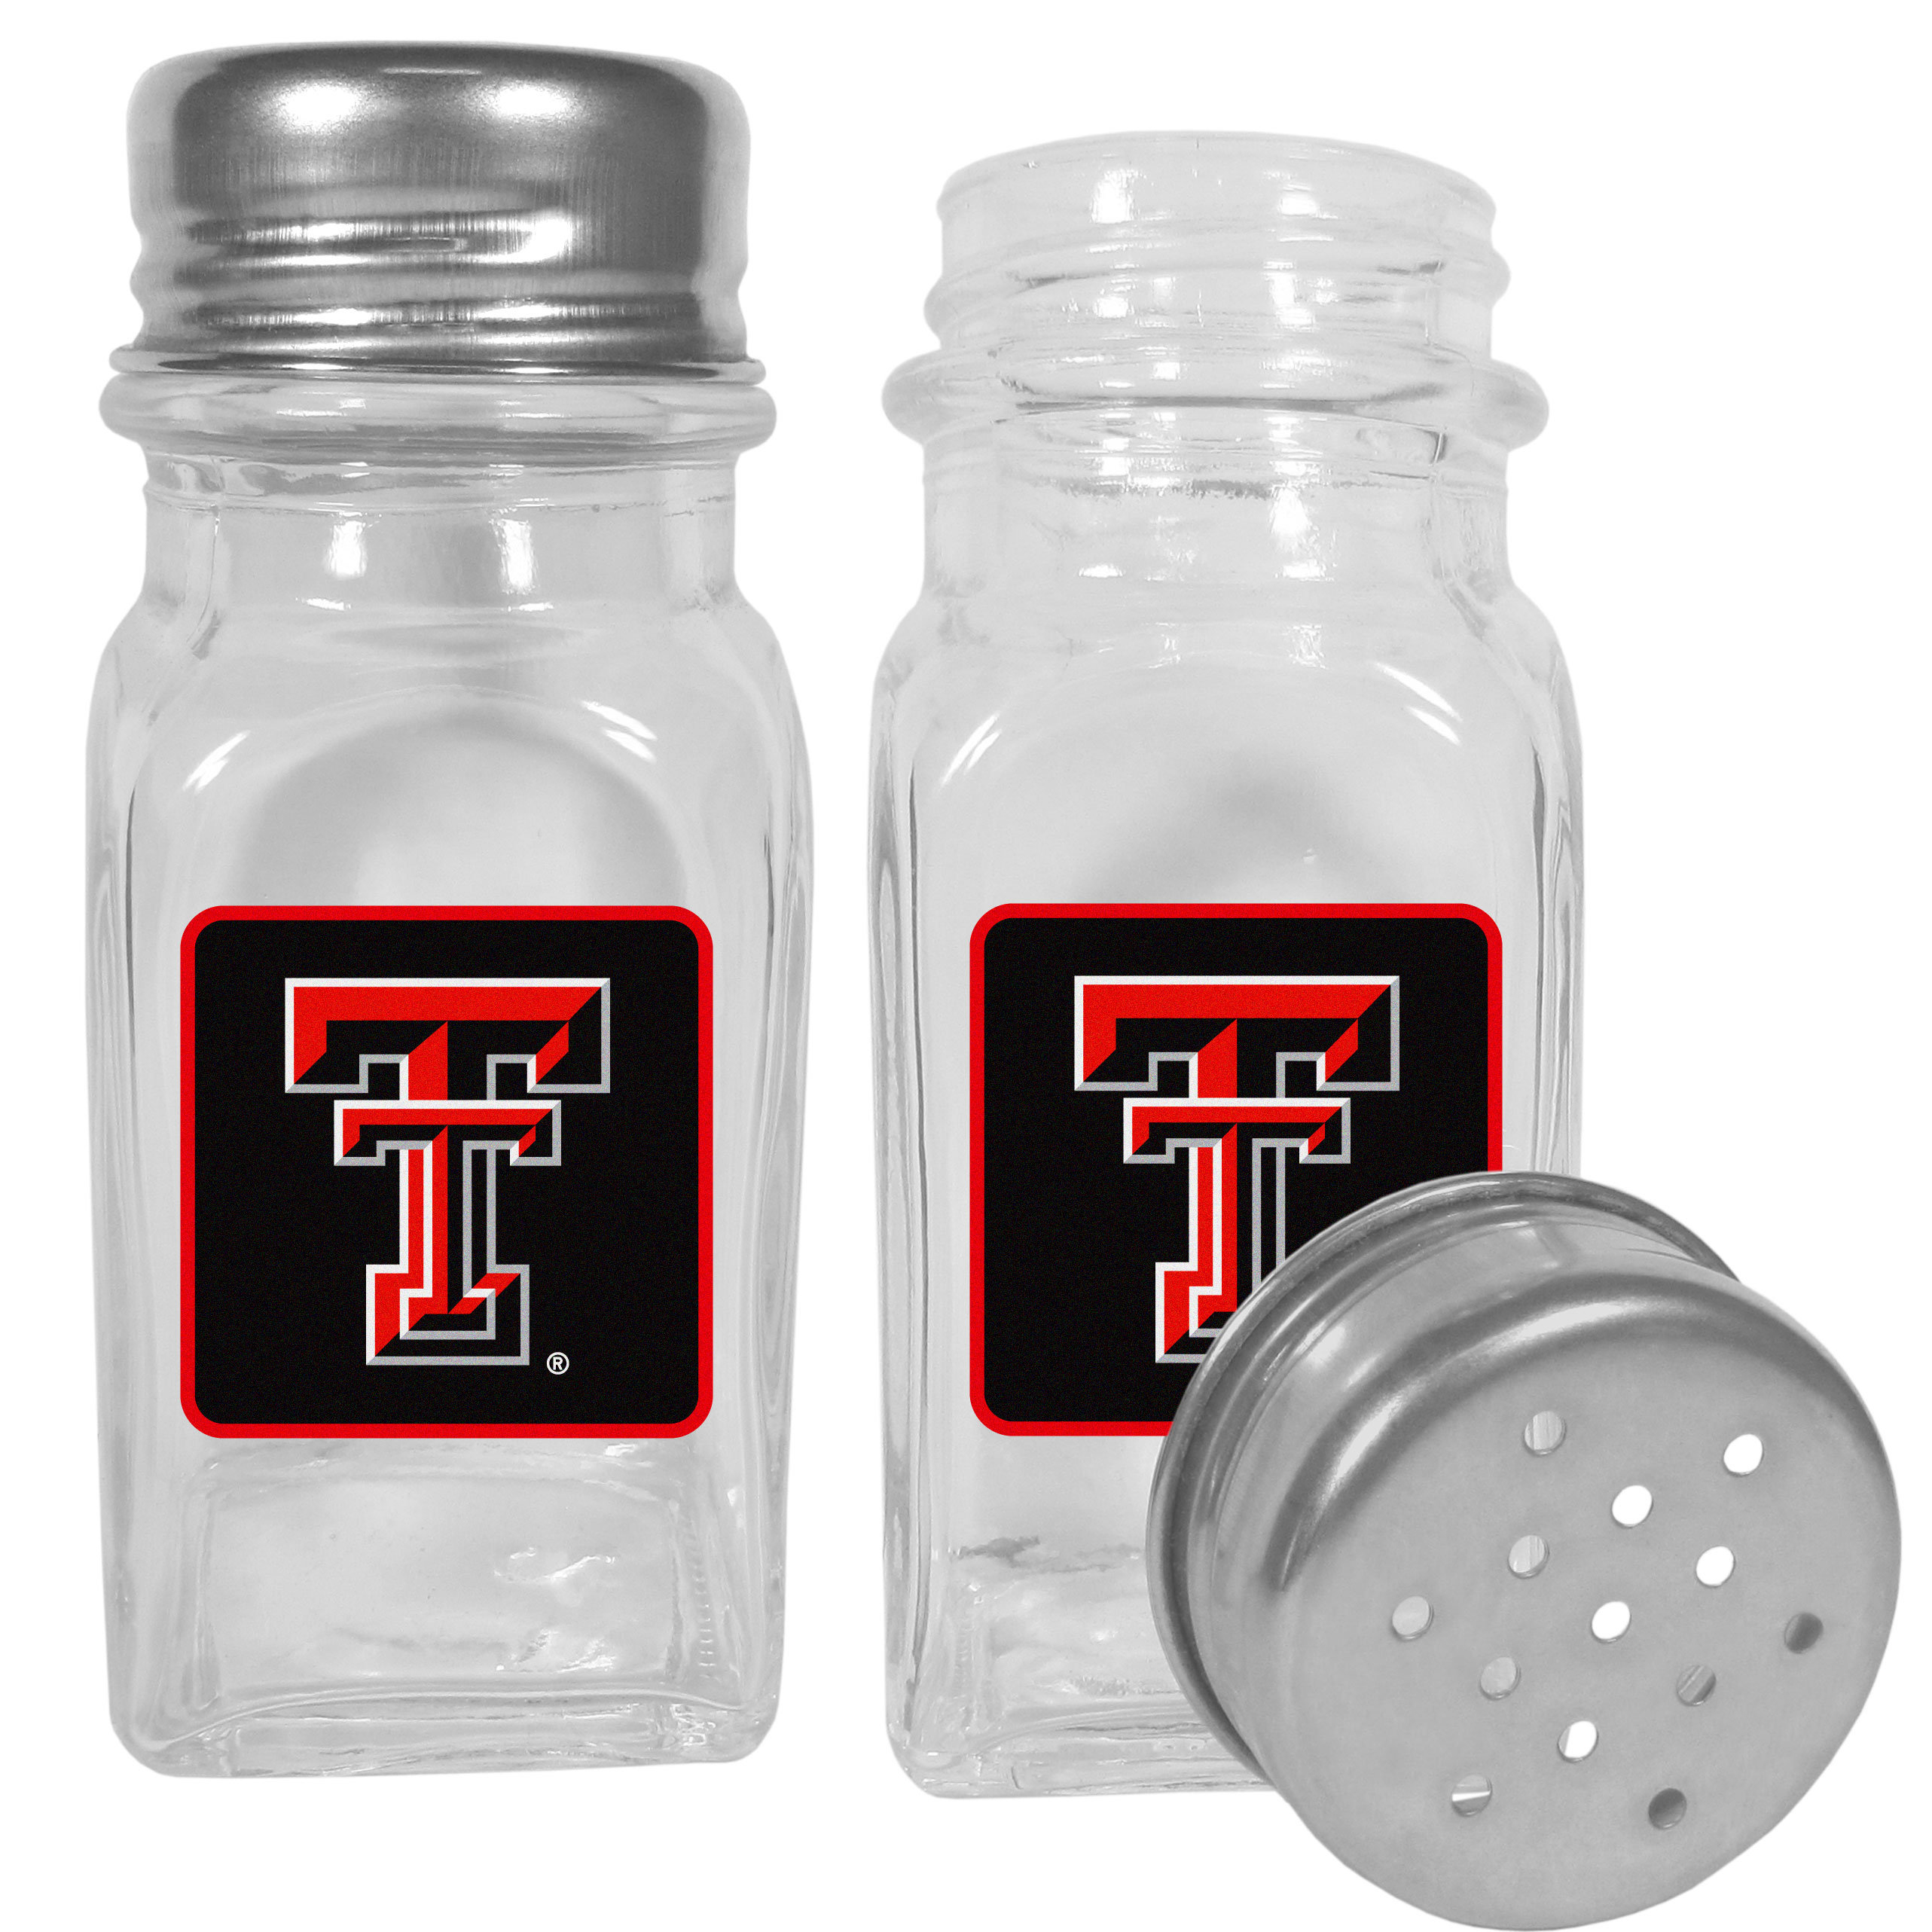 Texas Tech Raiders Graphics Salt & Pepper Shaker - No tailgate party is complete without your Texas Tech Raiders salt & pepper shakers featuring bright team logos. The diner replica salt and pepper shakers are glass with screw top lids. These team shakers are a great grill accessory whether you are barbecuing on the patio, picnicing or having a game day party.